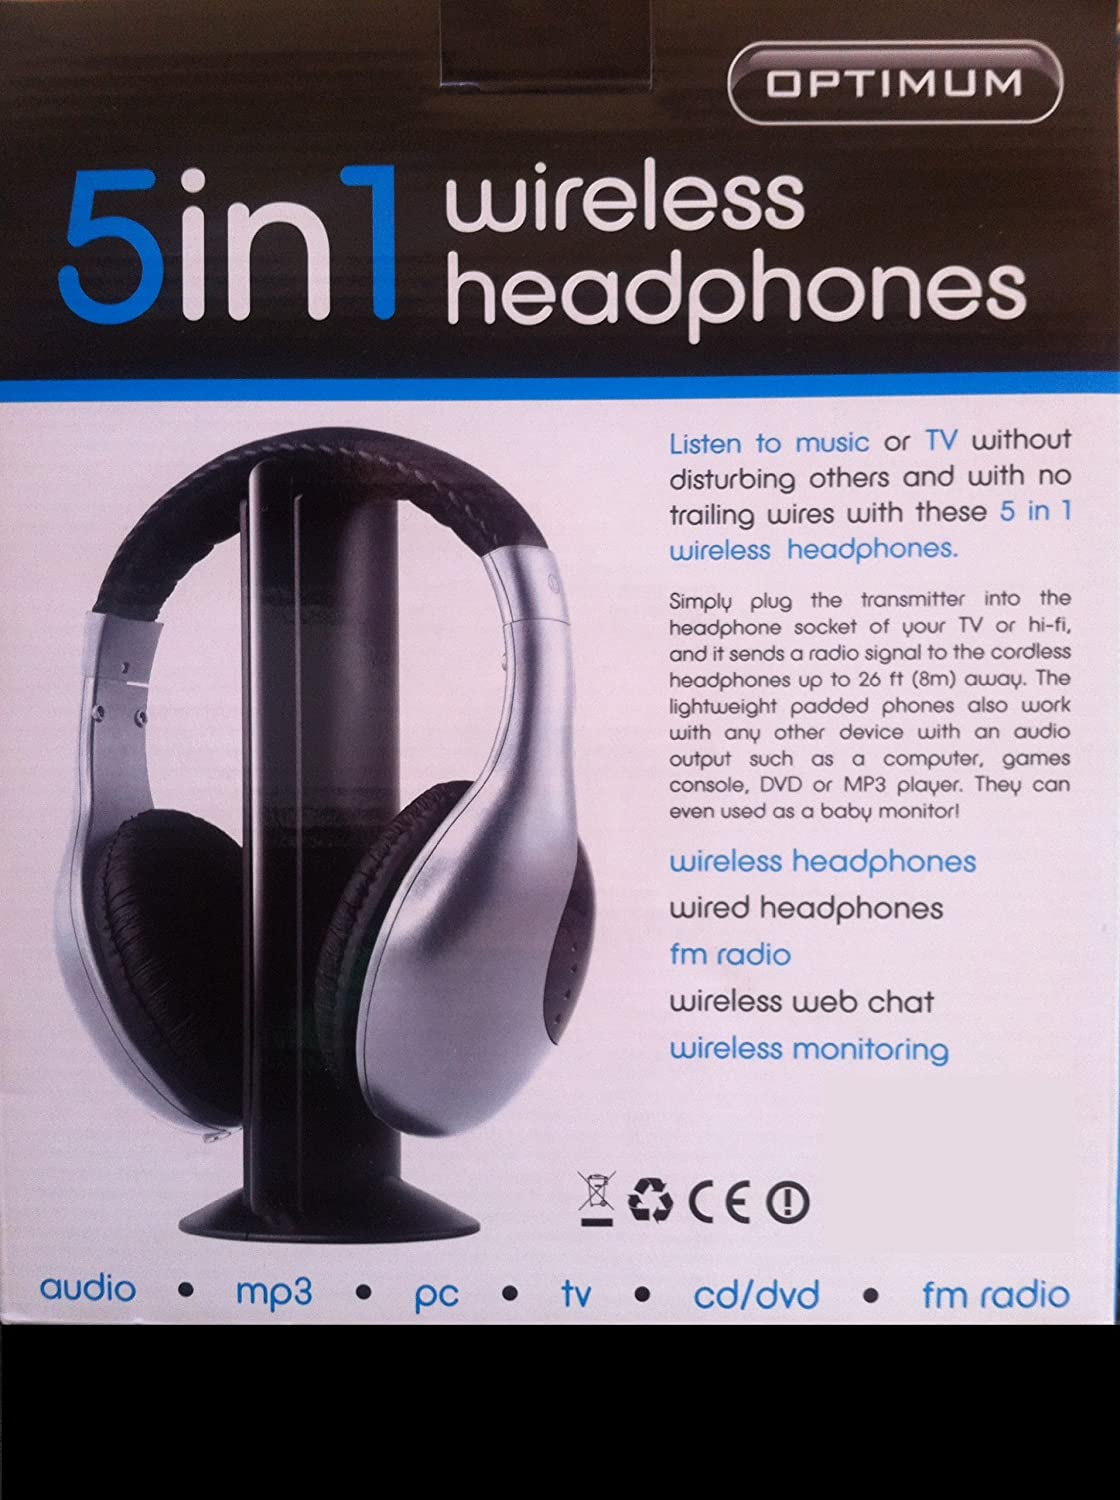 OPTIMUM 5in1 WIRELESS HEADPHONES - PN:257029: Amazon co uk